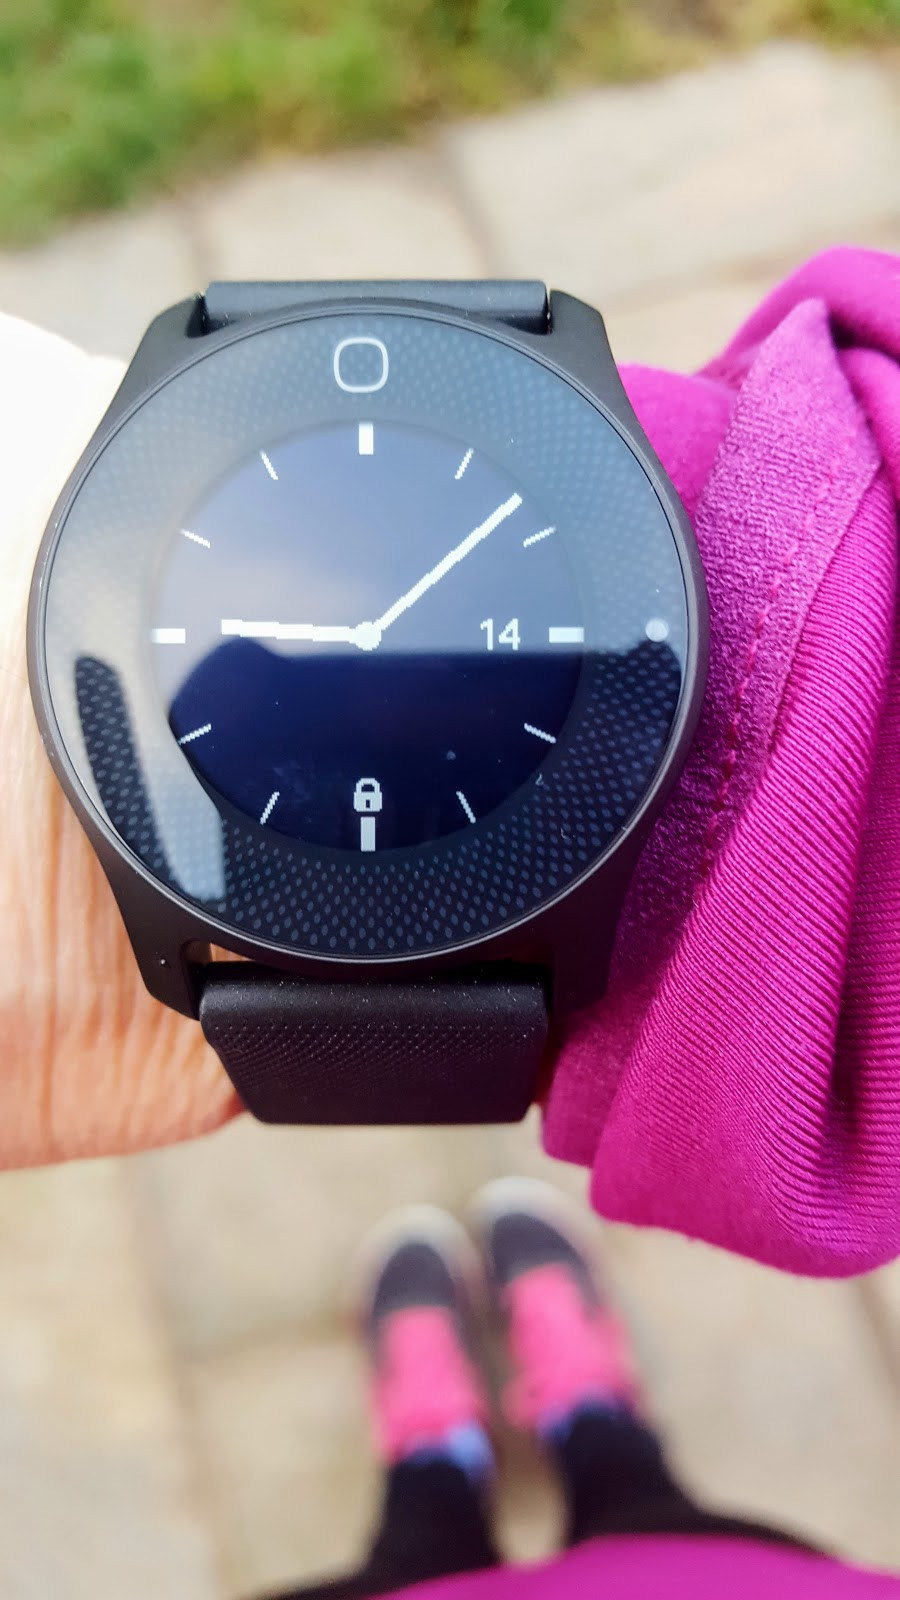 Philips Health Watch Review: Keeping Track